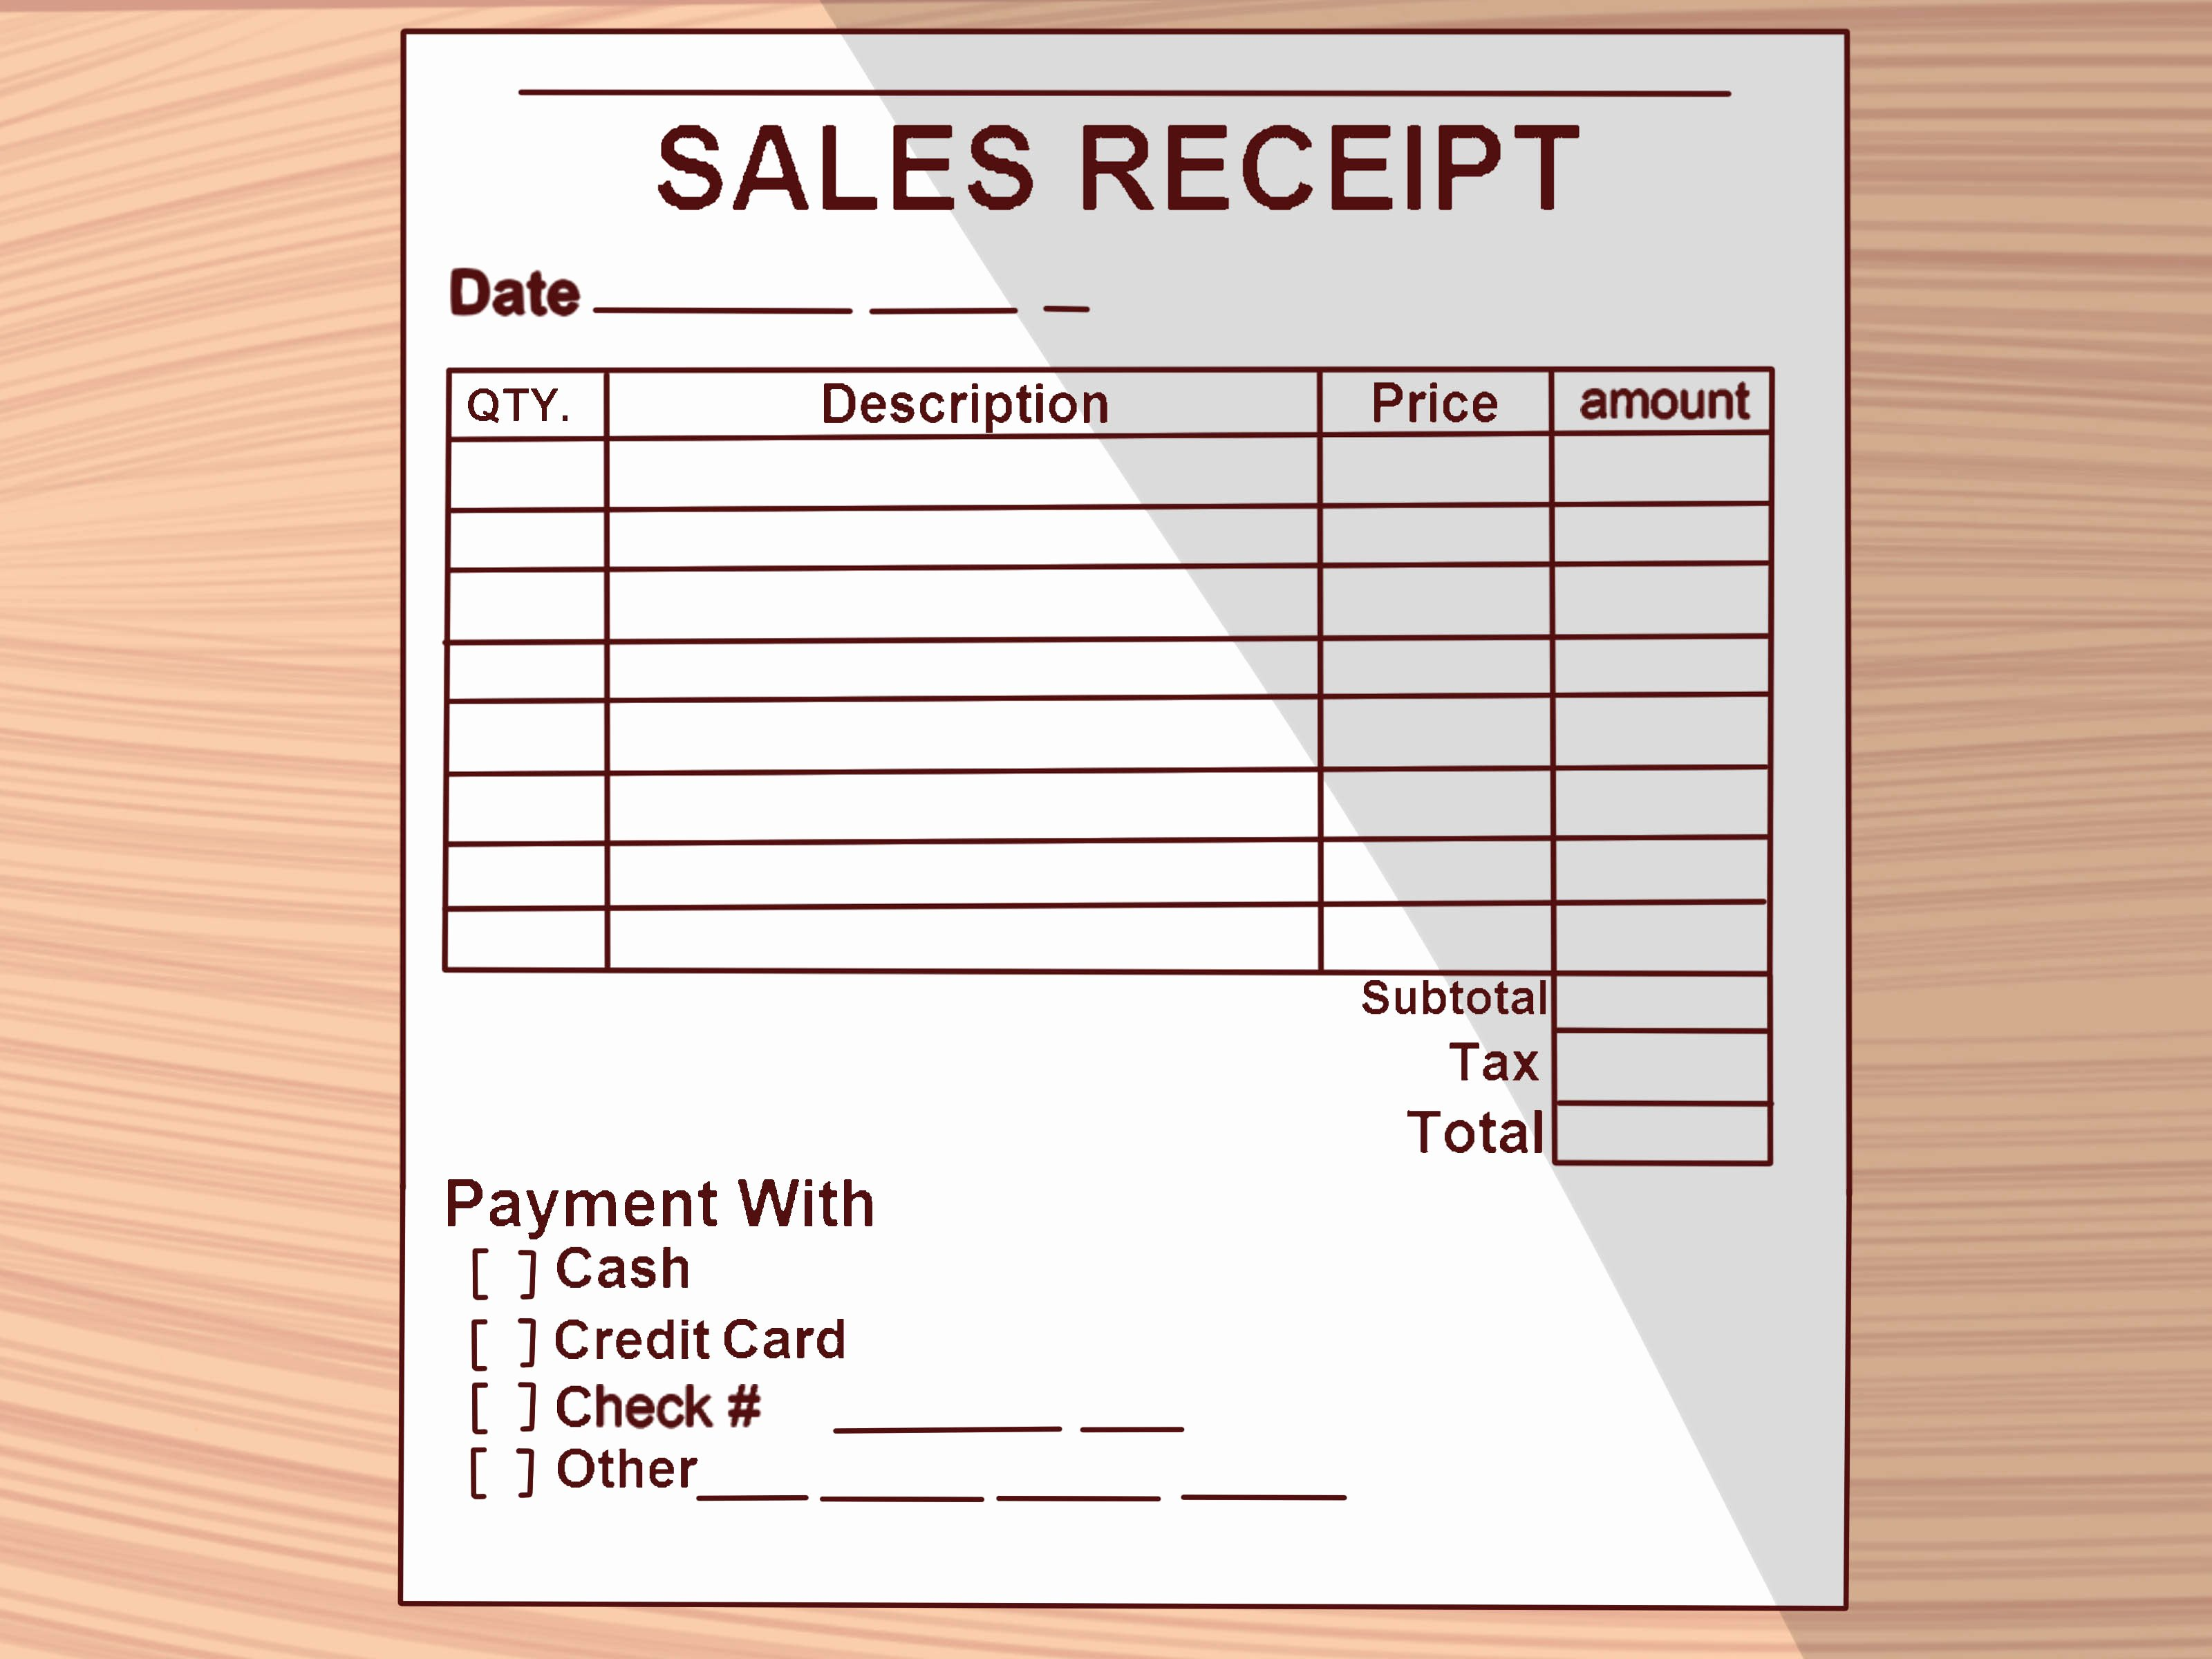 Hand Written Receipt Template Fresh How to Write A Receipt 9 Steps with Wikihow